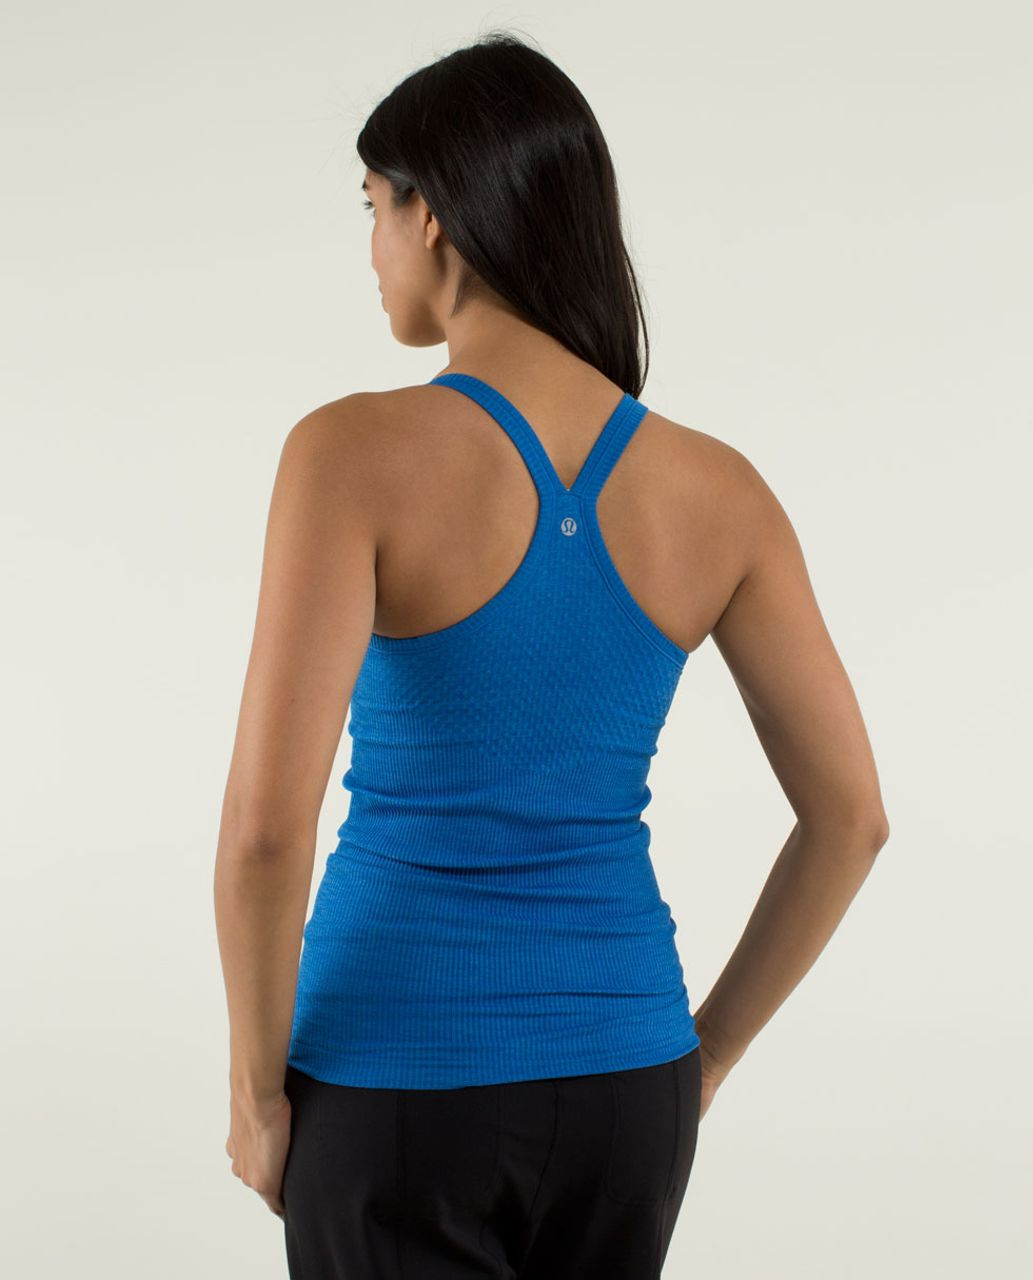 Lululemon Ebb To Street Tank - Heathered Baroque Blue